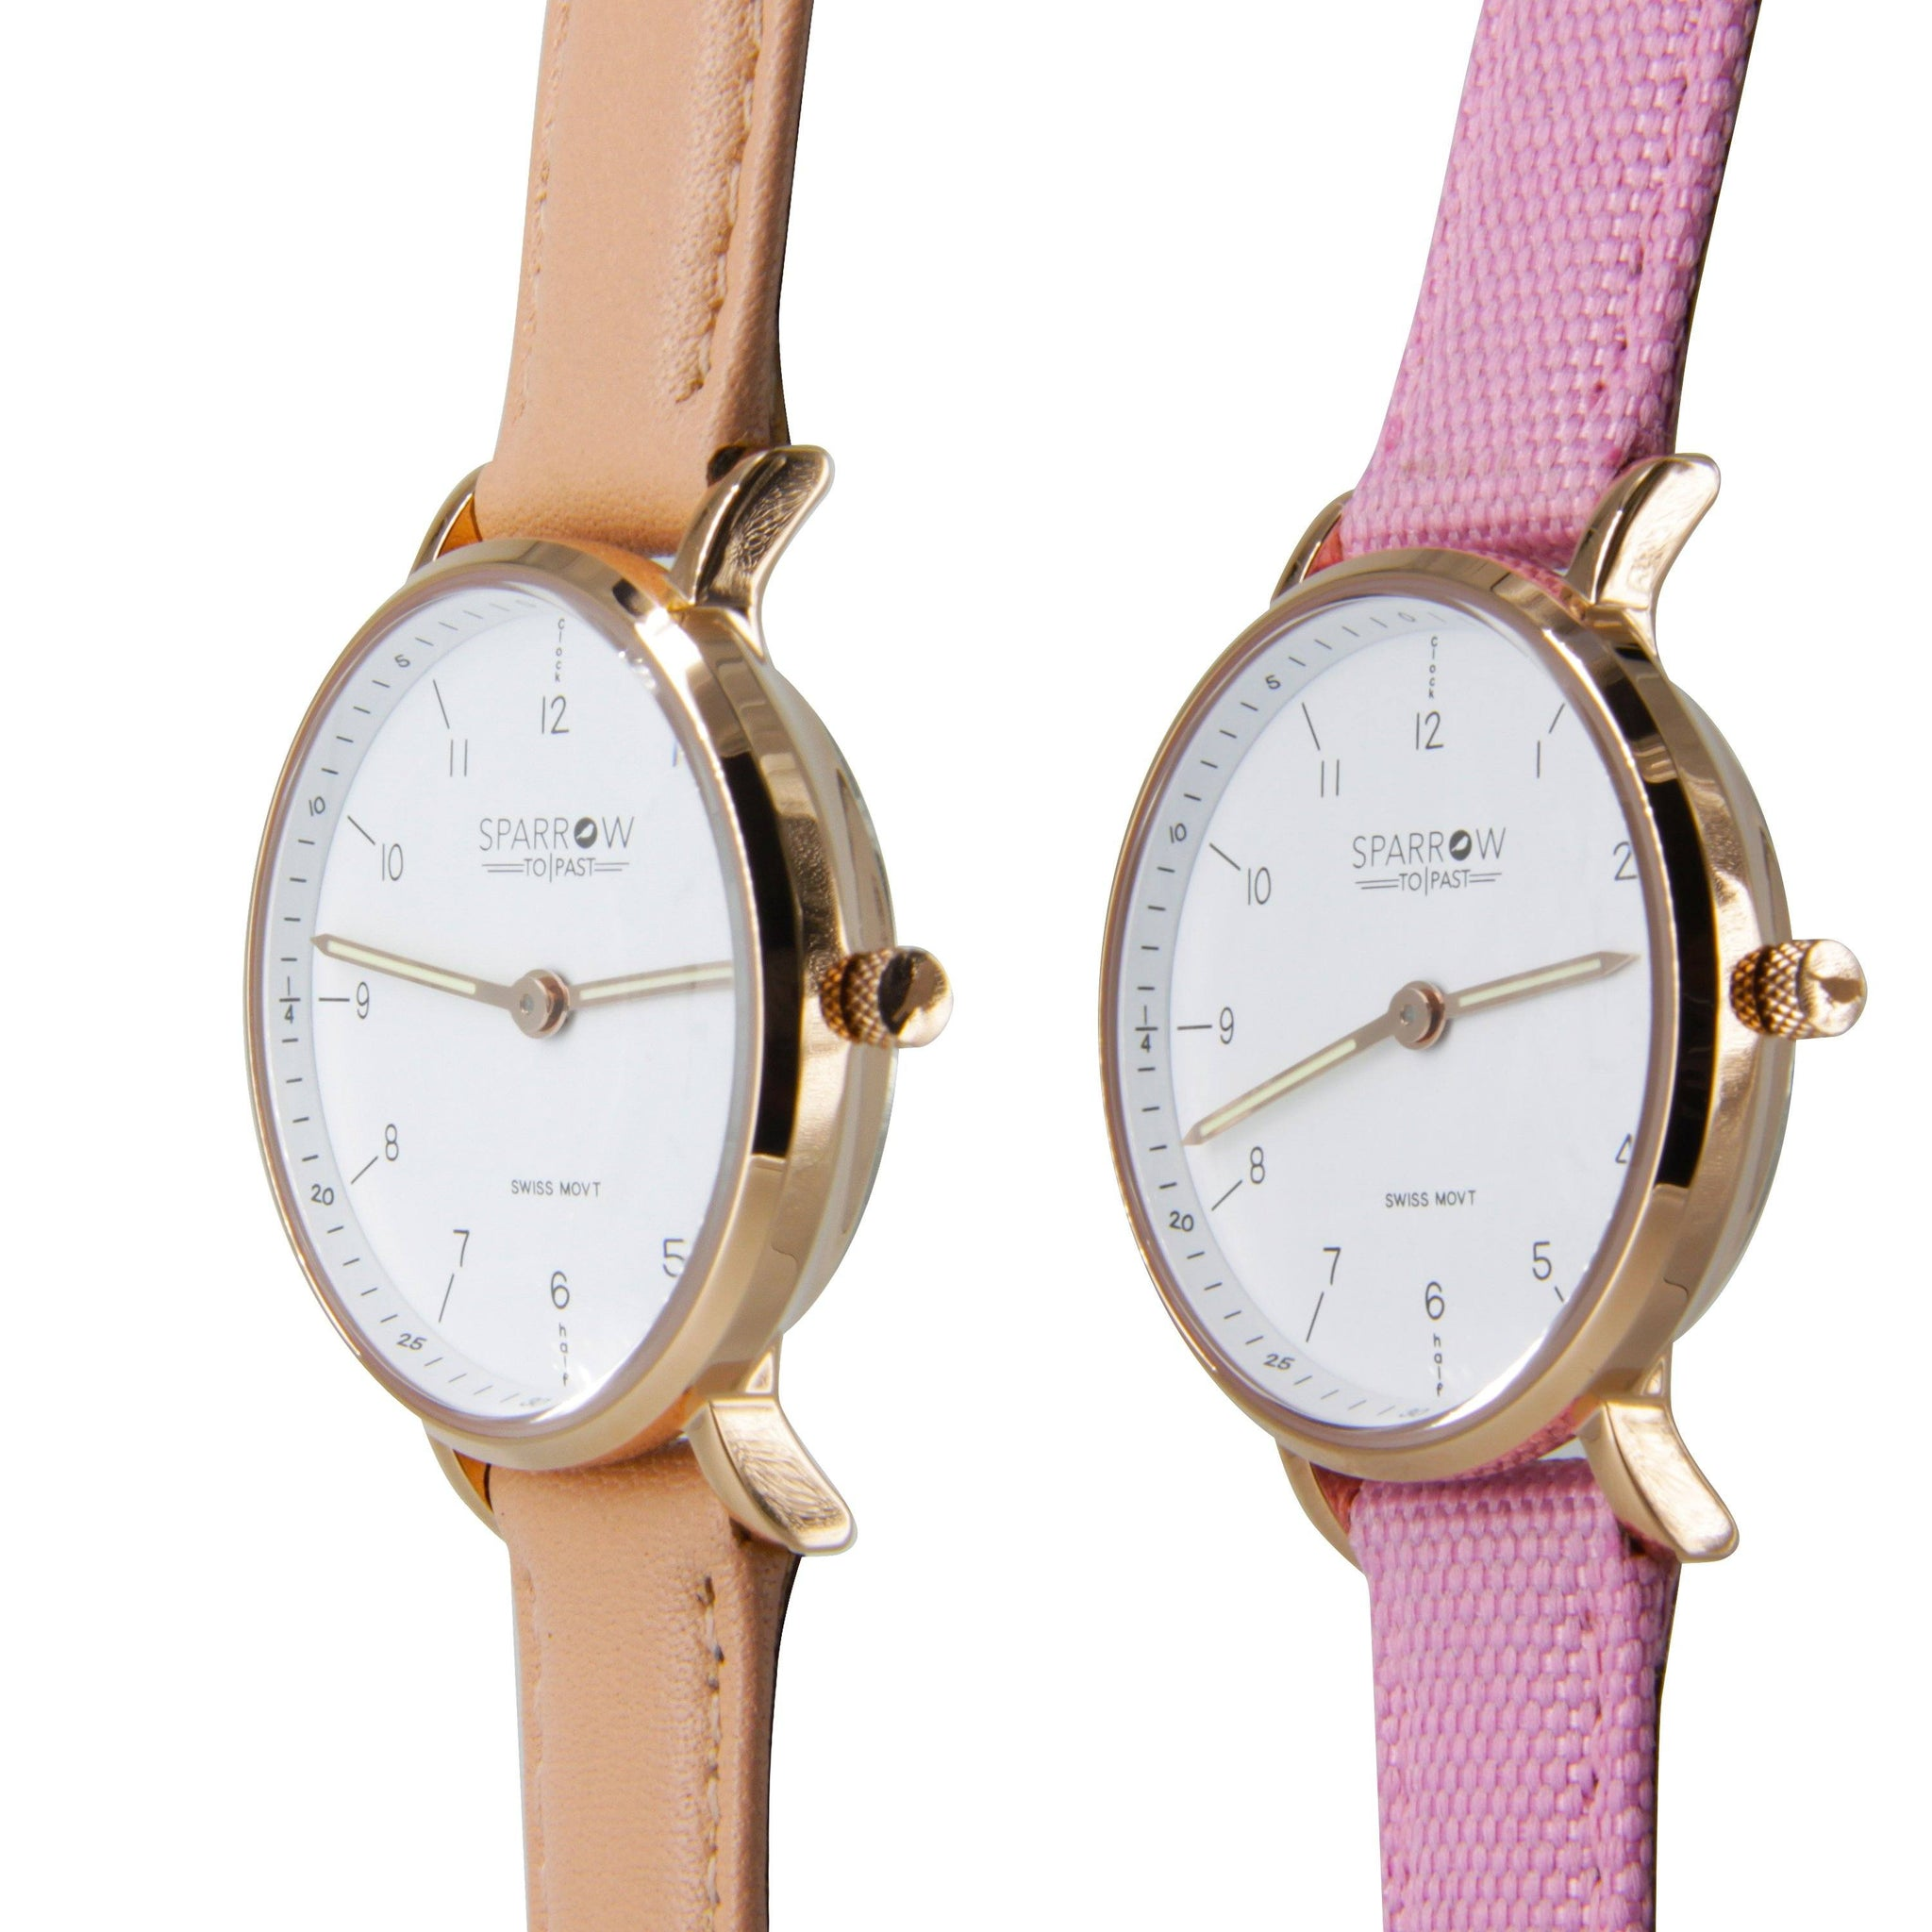 Girls Watch - Rose Gold, with Blush and Pink bands - Sparrow Watches